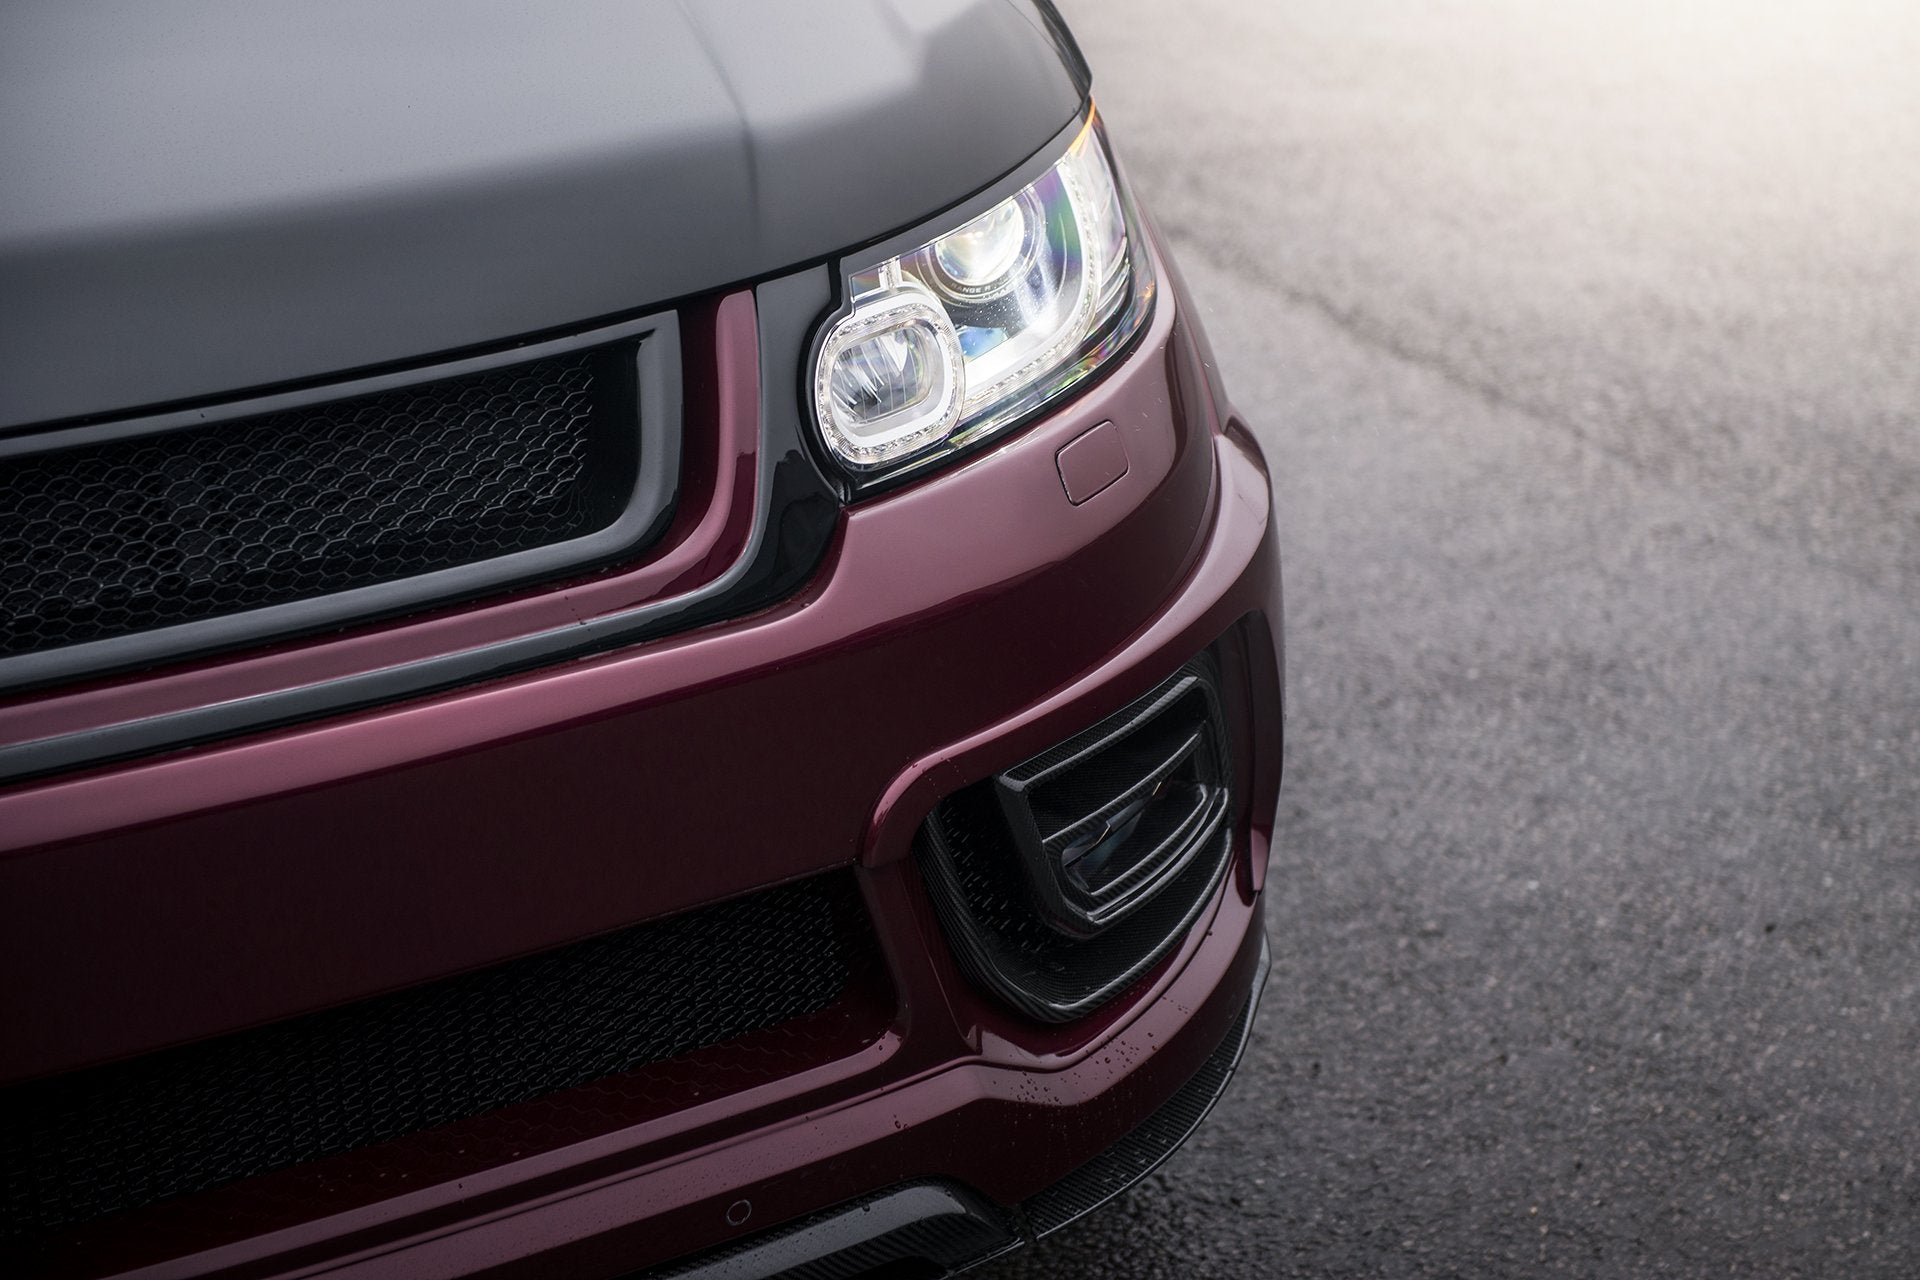 Range Rover Sport (2013-2018) Vented Front Grille by Kahn - Image 2237